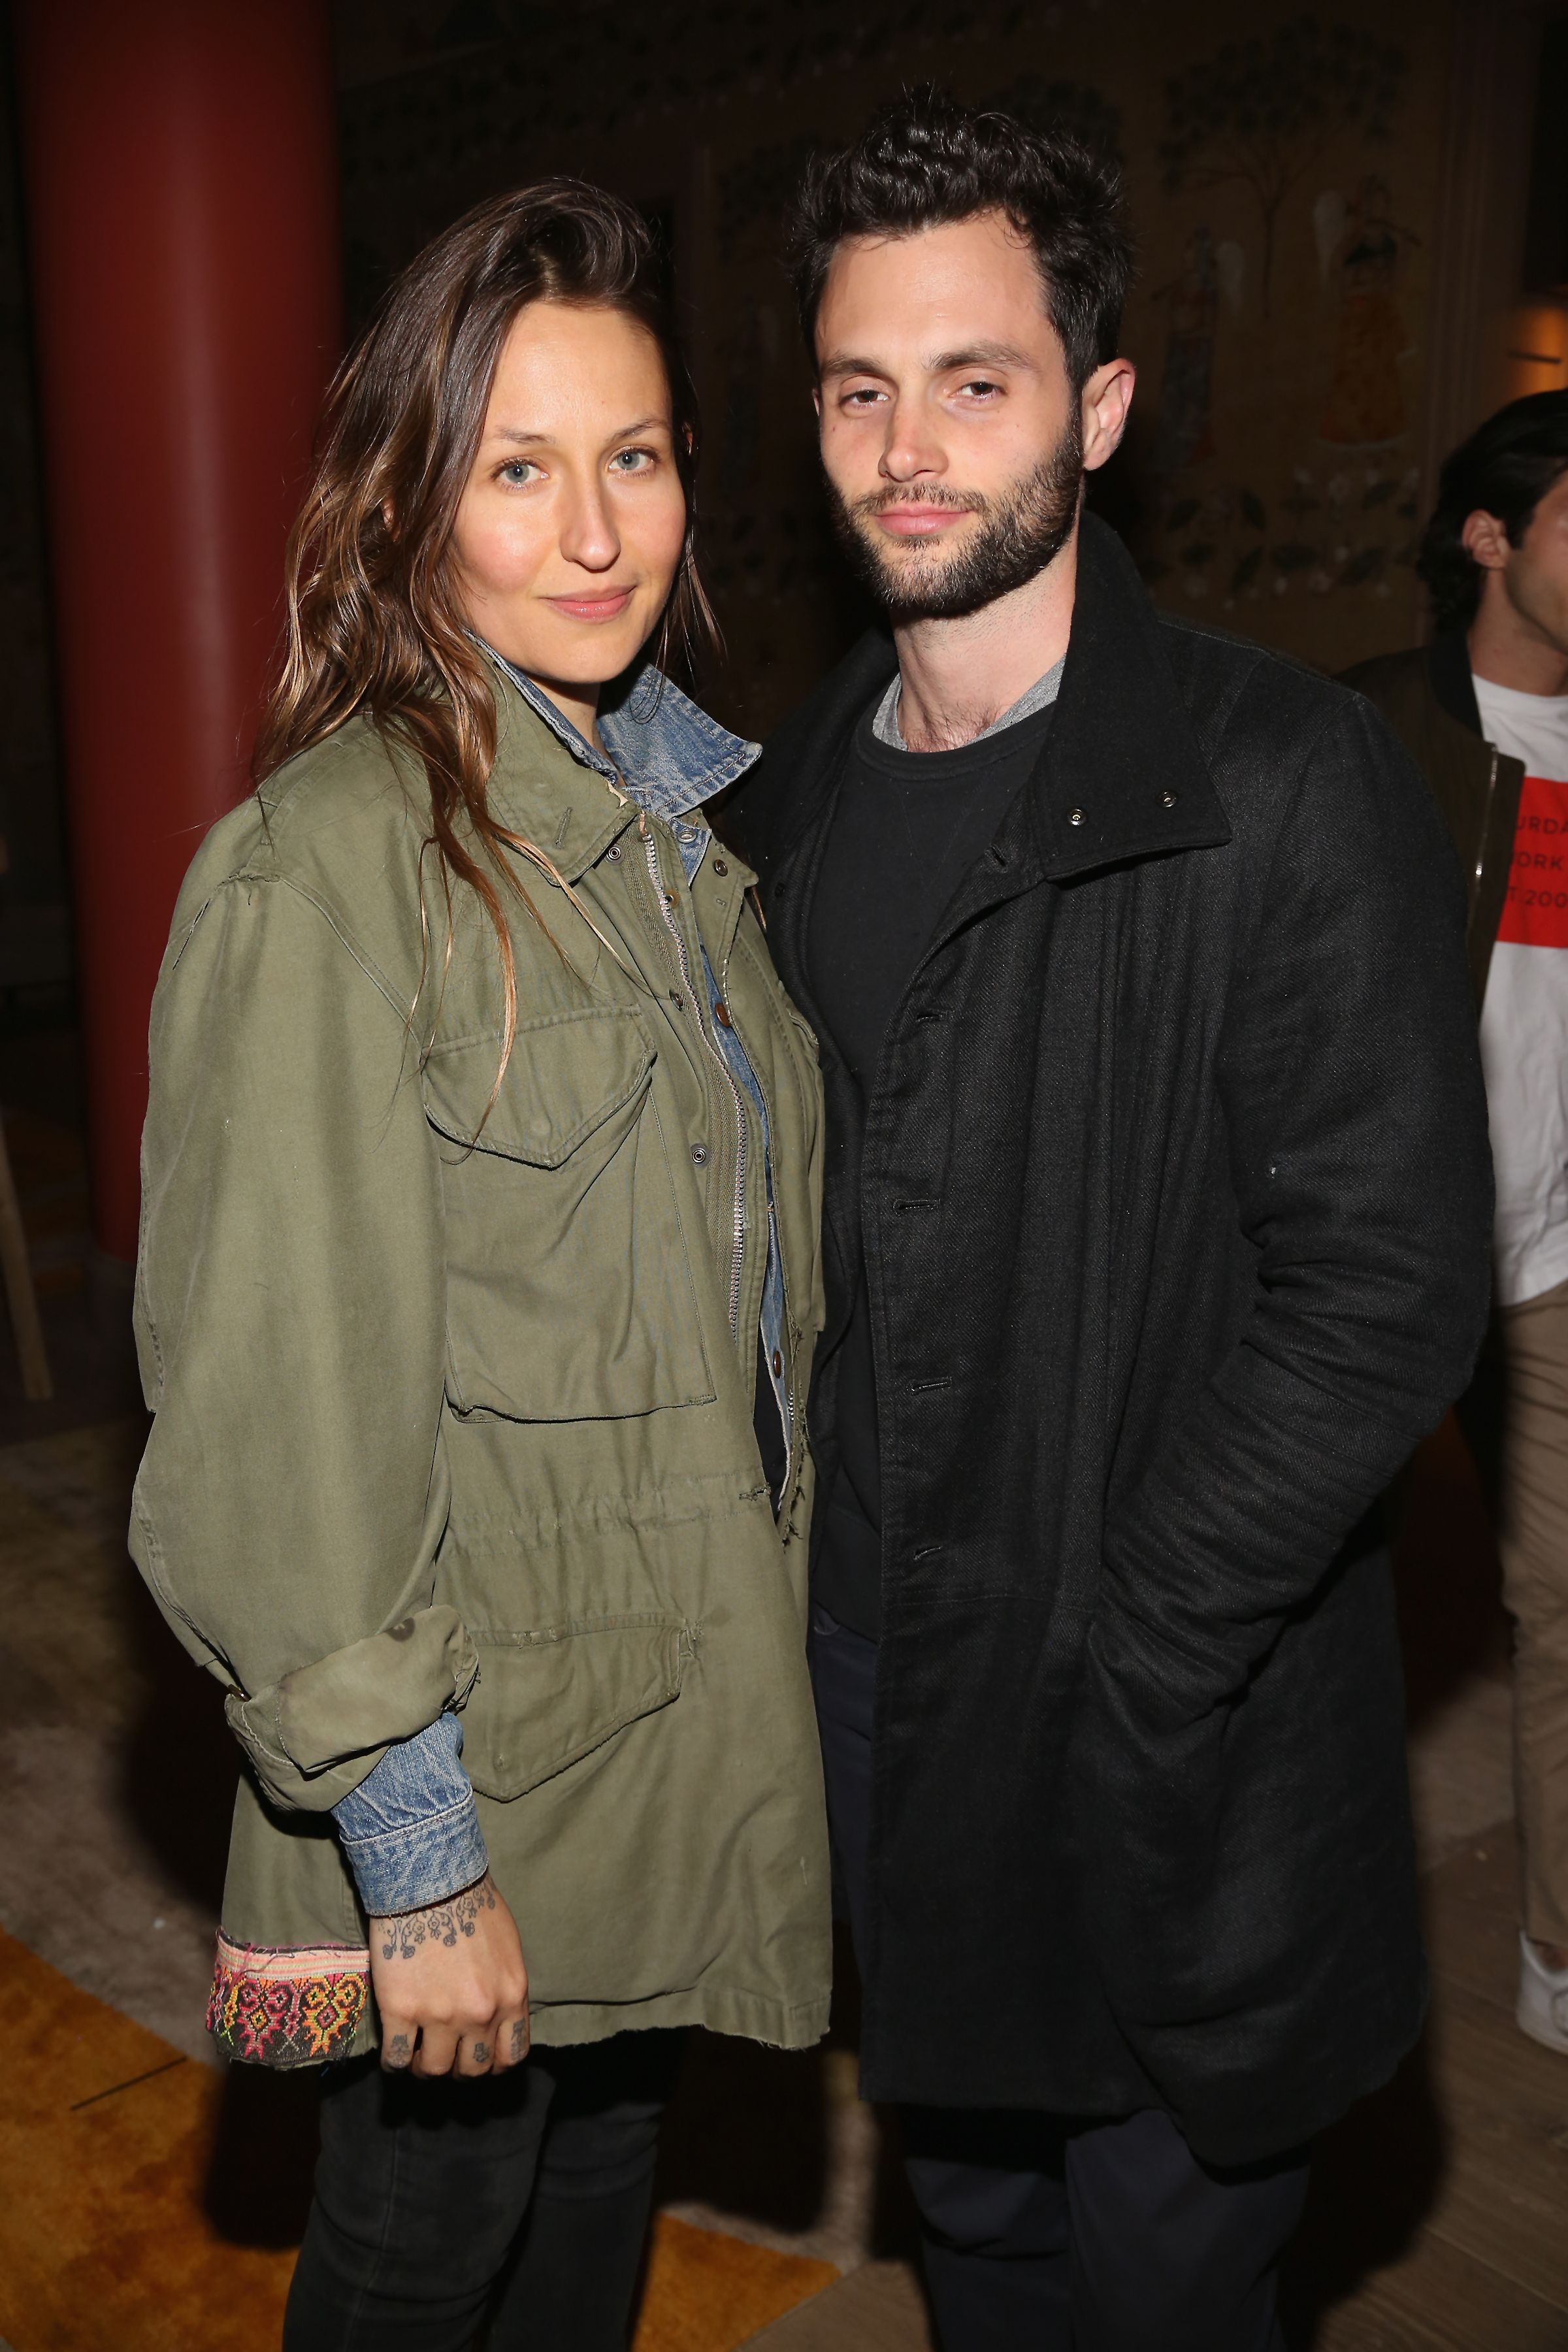 Baby Alert: Penn Badgley Is Expecting His First Child with His Wife, Domino Kirke